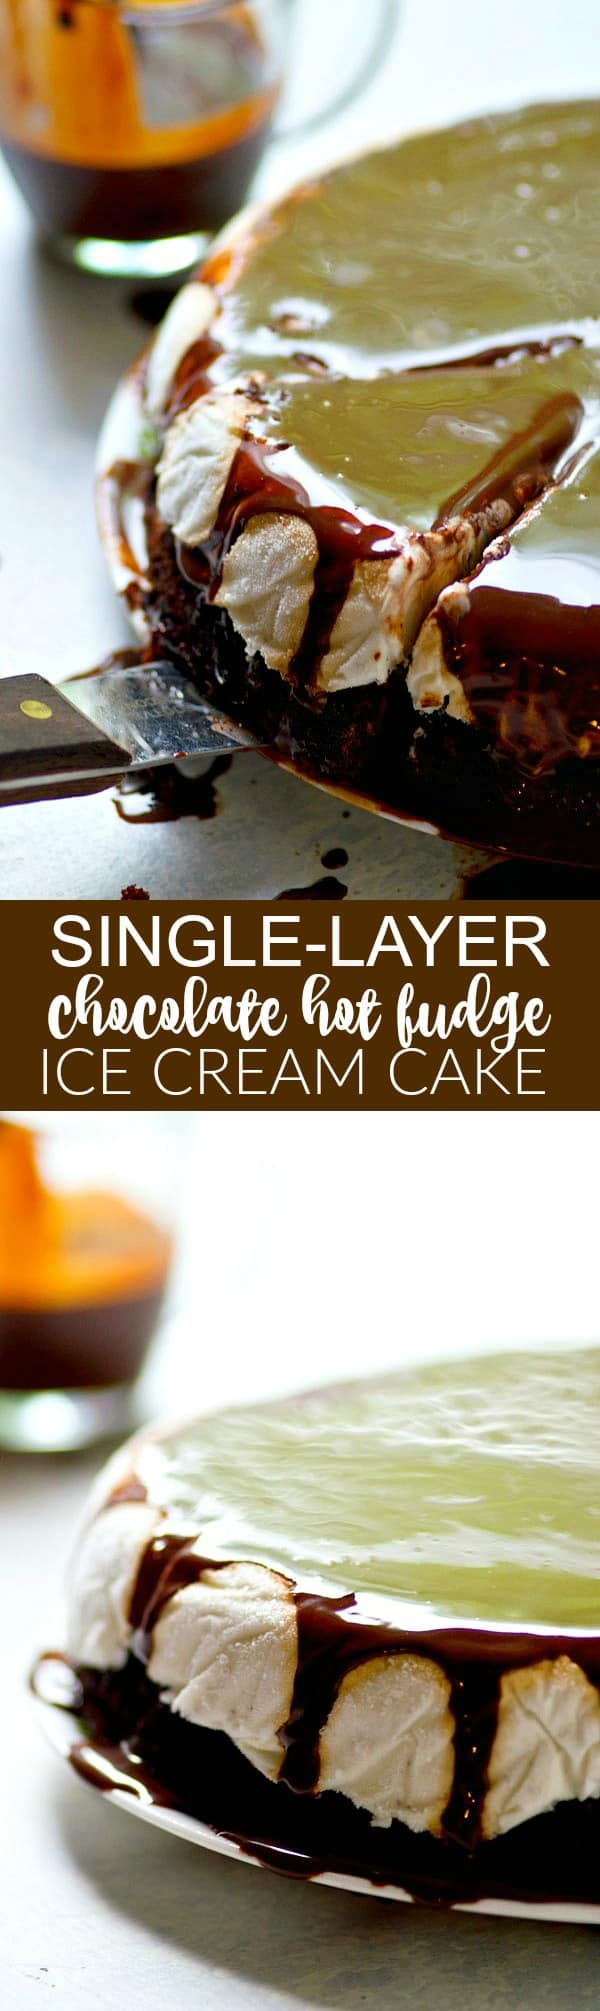 Ice cream cake is the EASIEST summer dessert ever when you make this simplified single-layer chocolate hot fudge ice cream cake! You can't beat the homemade hot fudge sauce.